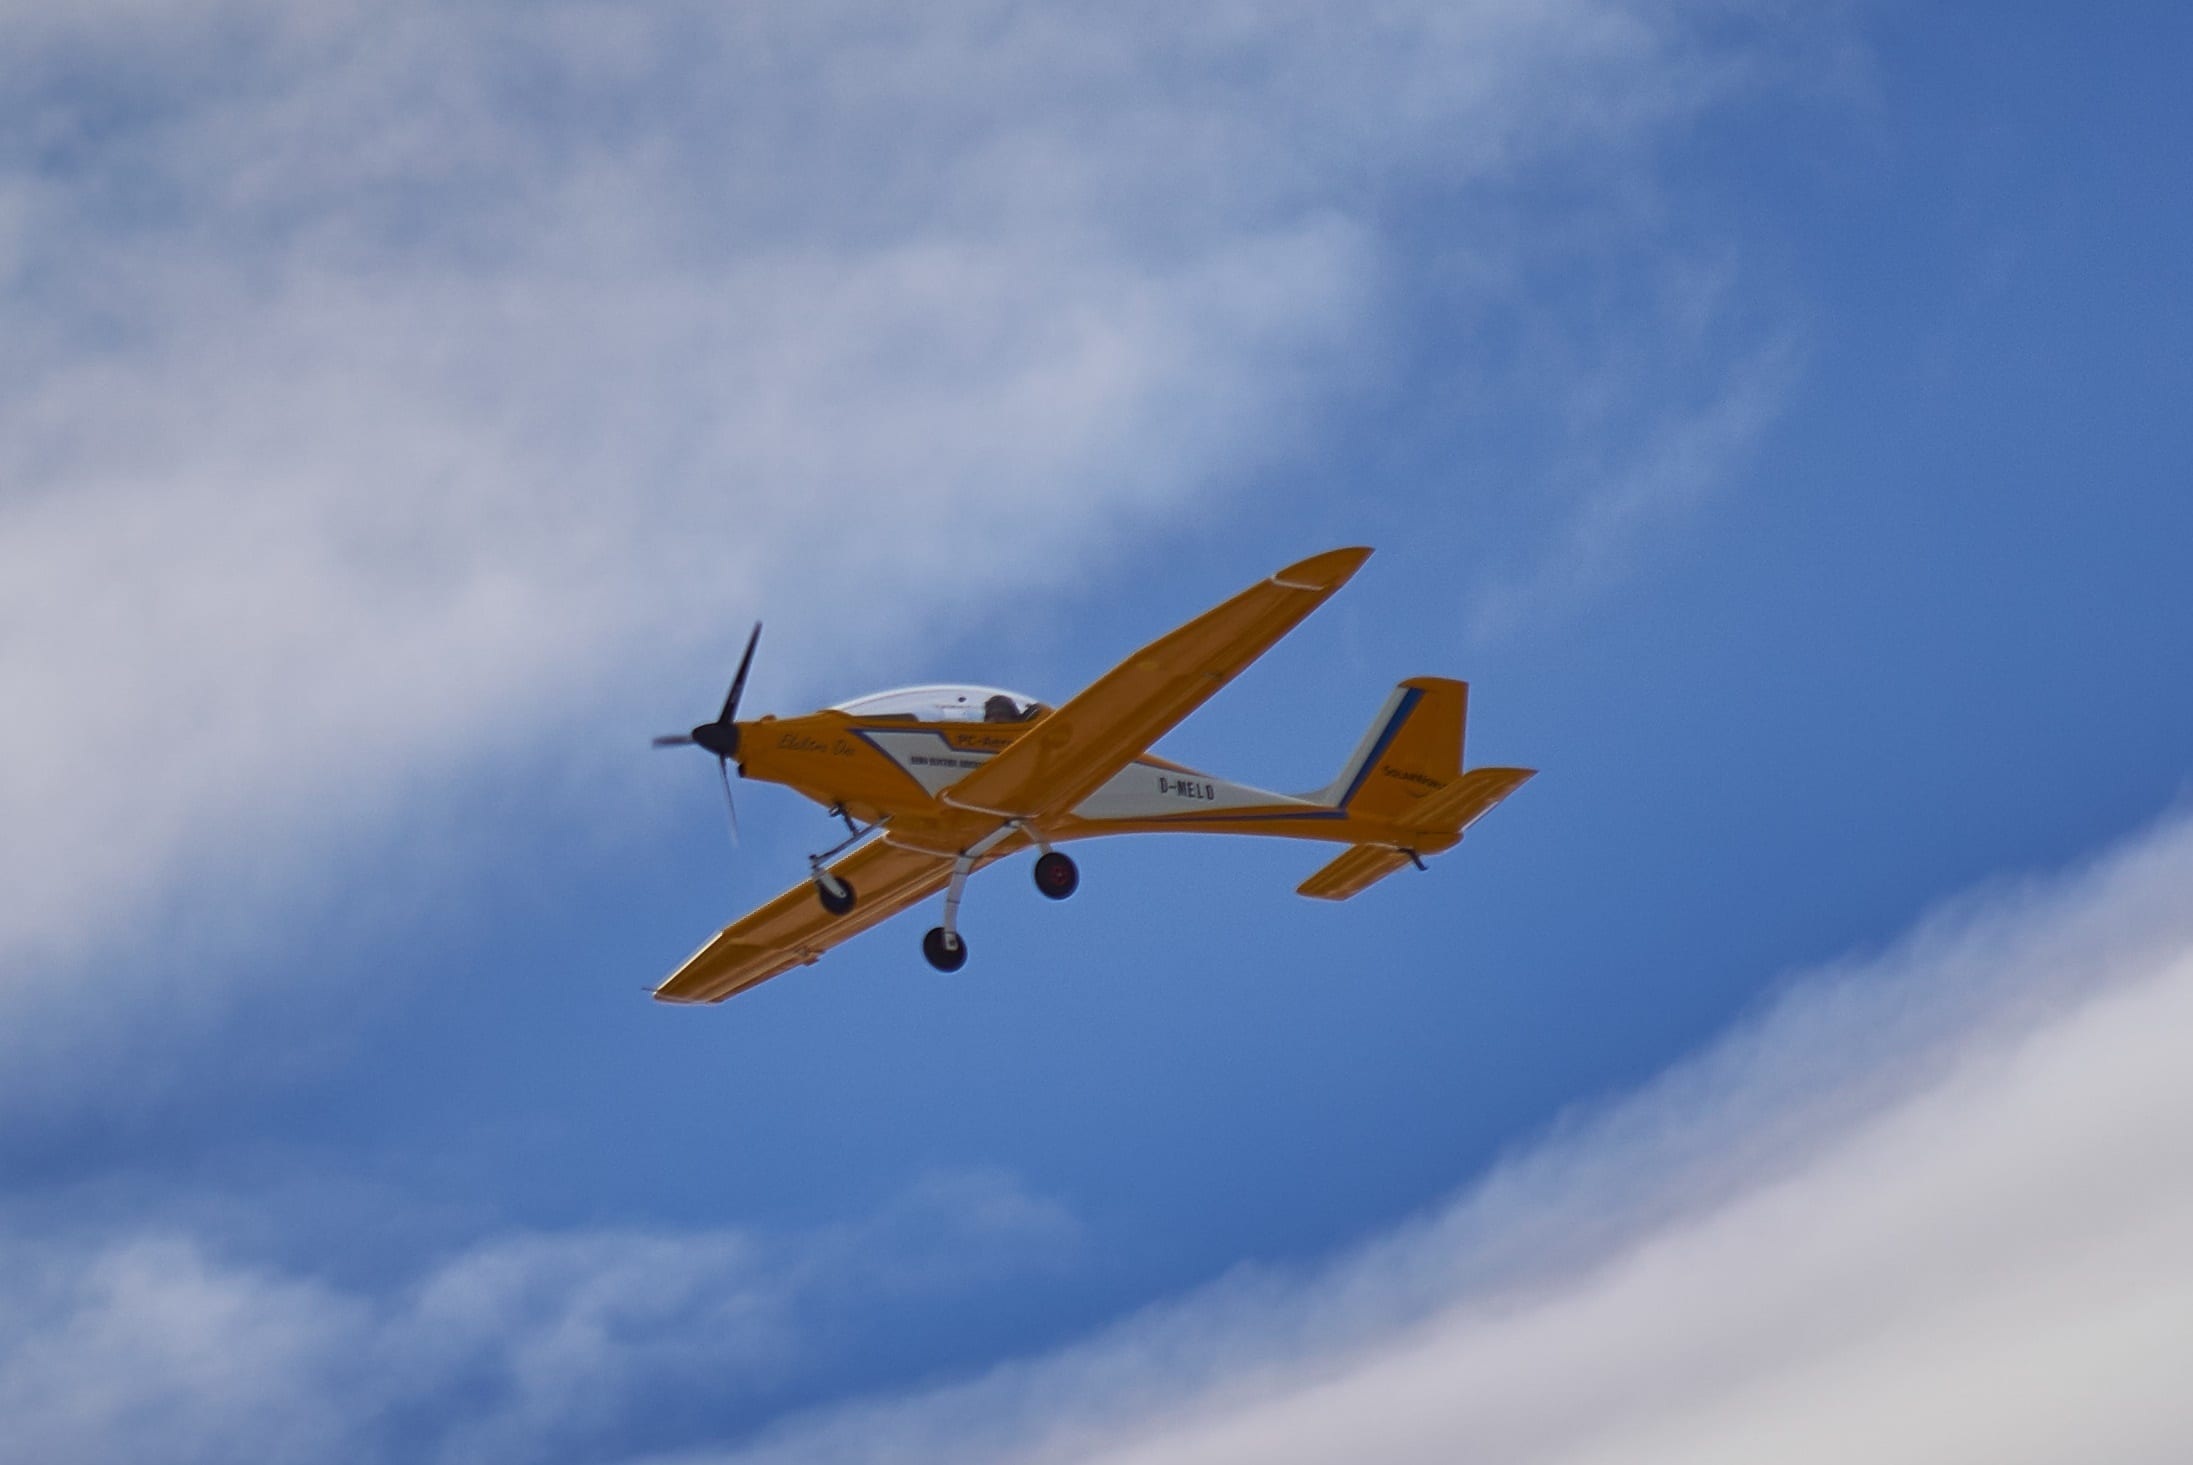 Httpsgeneralaviationnews20151210rv 6 anniversary to be electric flight noise testg fandeluxe Choice Image